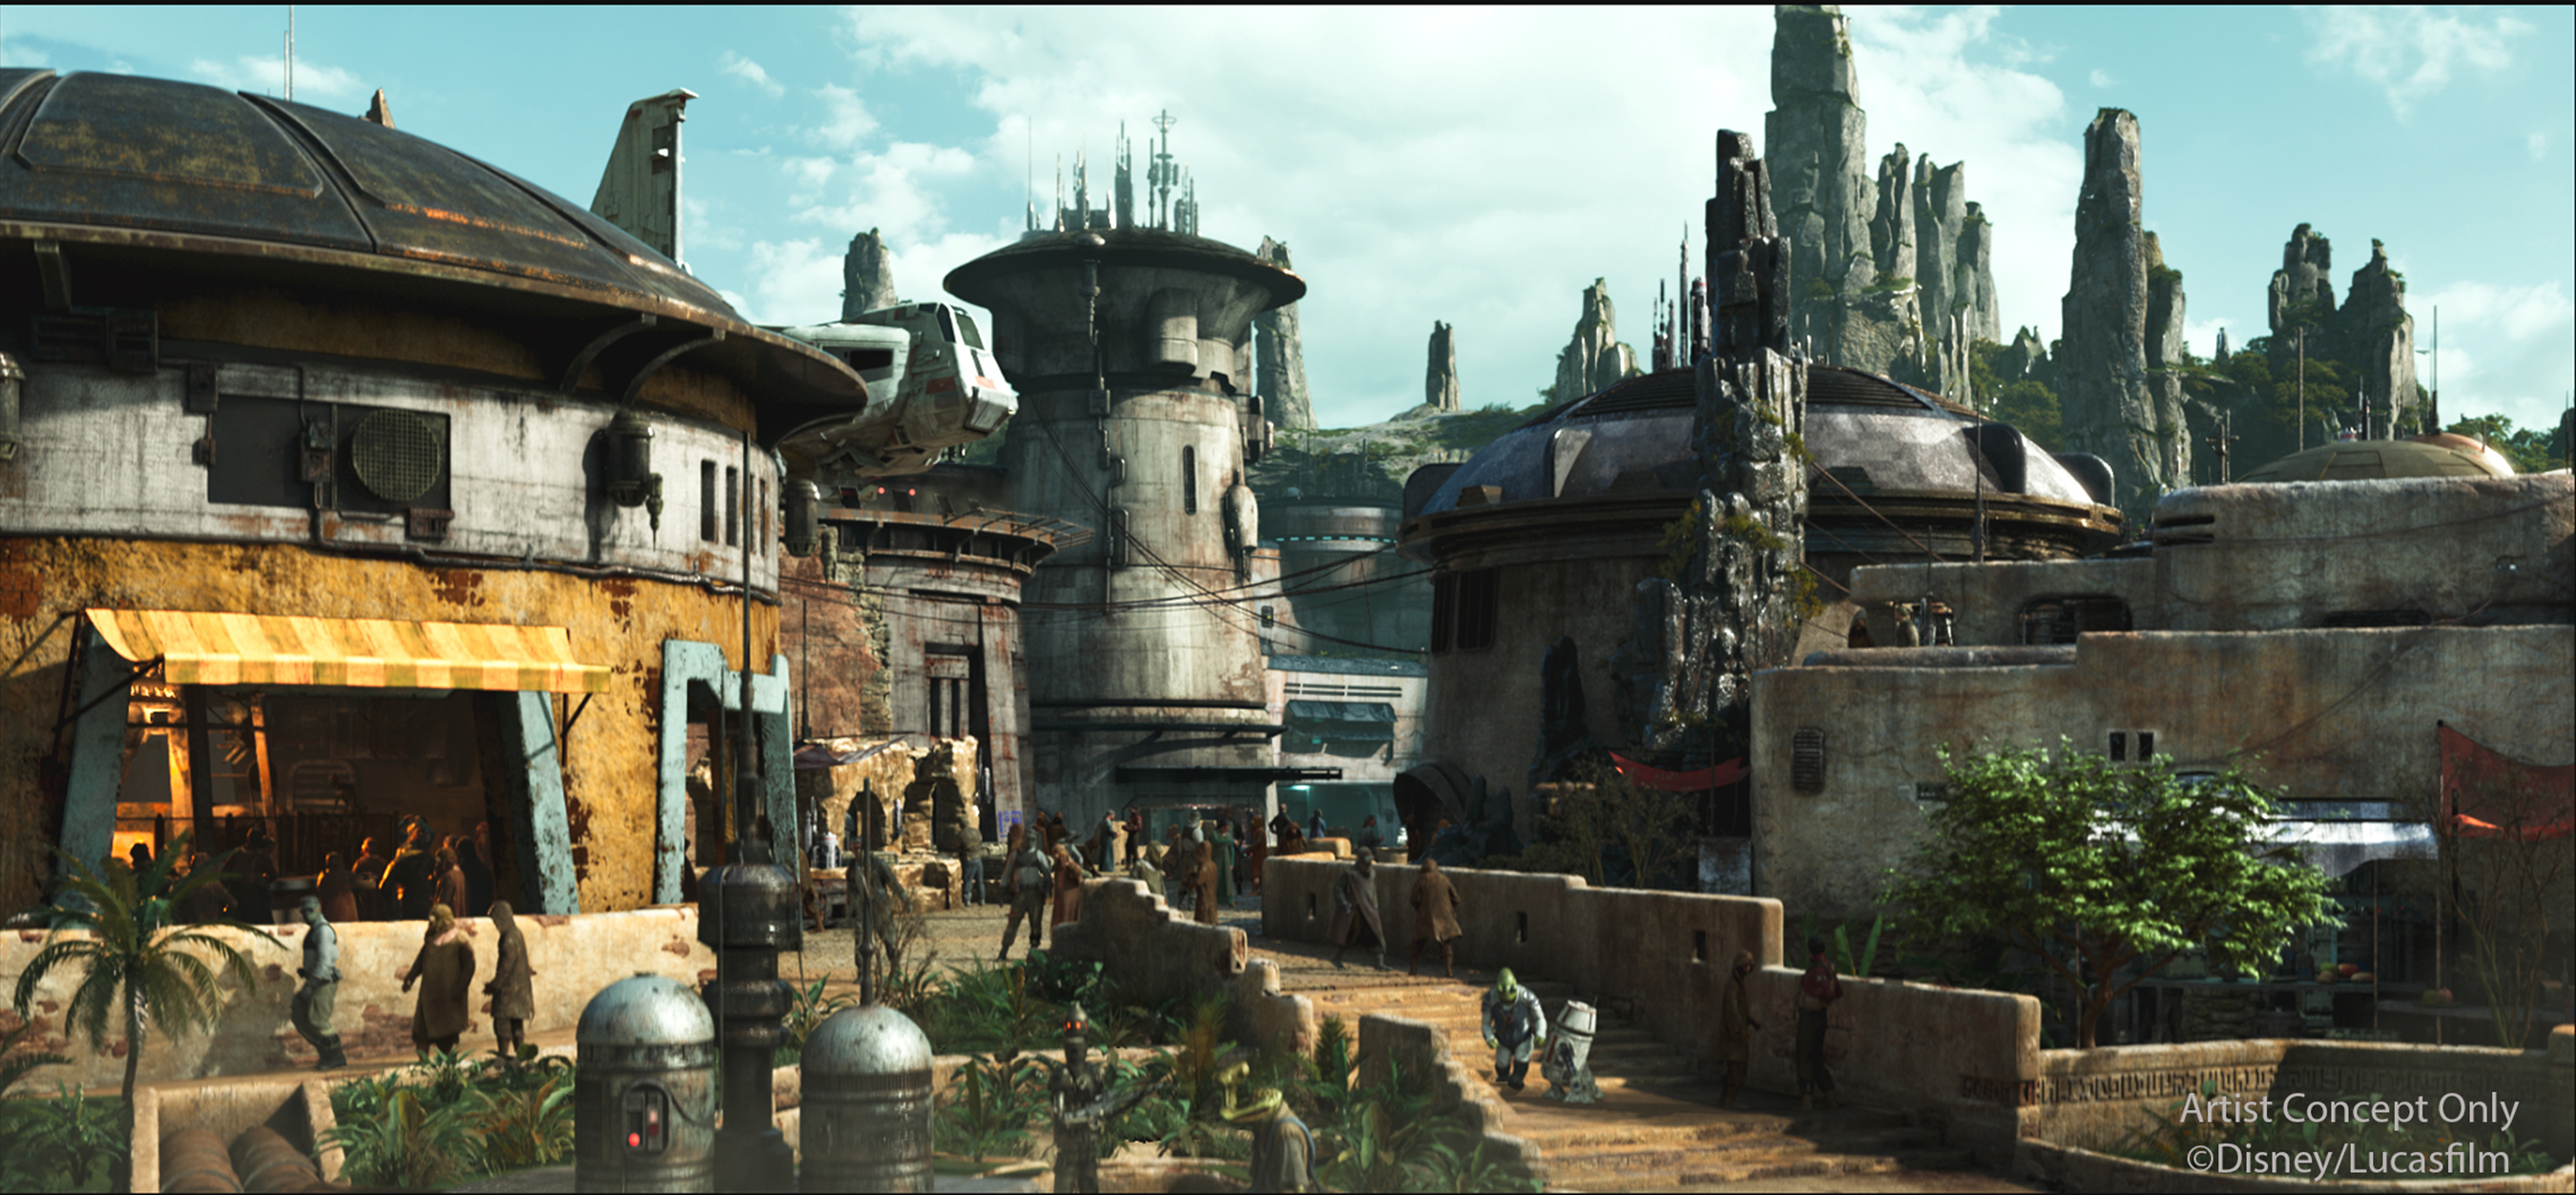 Slide 15 of 15: Black Spire Outpost is the name of the village inside of the upcoming Star Wars: Galaxy's Edge at both Disneyland Resort in California and Walt Disney World Resort in Florida. The village is closely associated with the geological formations that surround it. As the largest settlement on the planet Batuu, Black Spire Outpost is an infamous stop for traders, adventurers, and smugglers traveling around the Outer Rim and Wild Space. Star Wars: Galaxy's Edge will open at Disneyland Resort in summer 2019 and at Walt Disney World Resort in late fall 2019. (Disney)